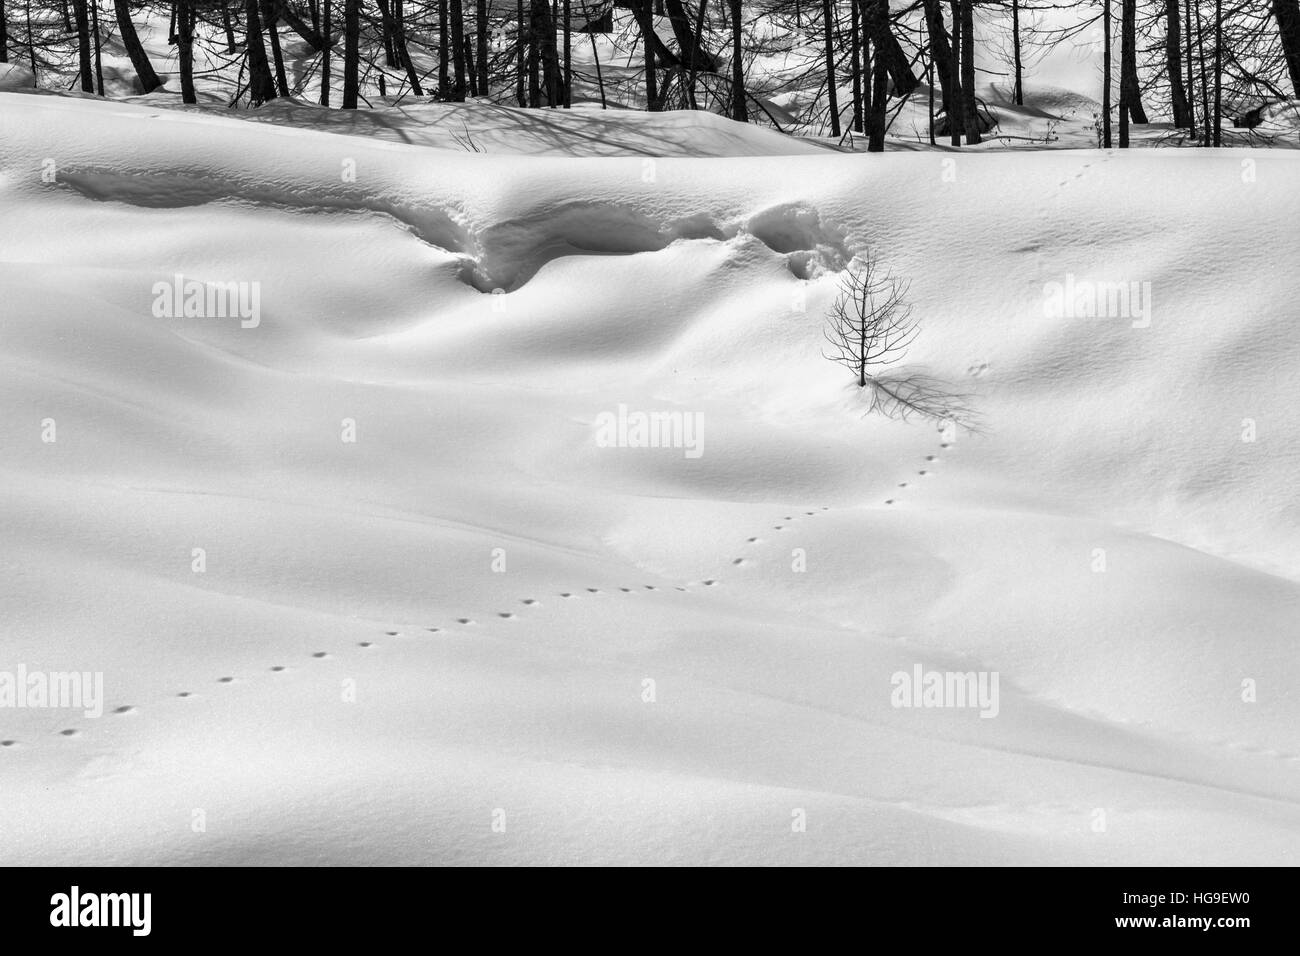 Mountain in winter. Tracks of wild animal on the snow in a mountain forest. Black and white photo. - Stock Image